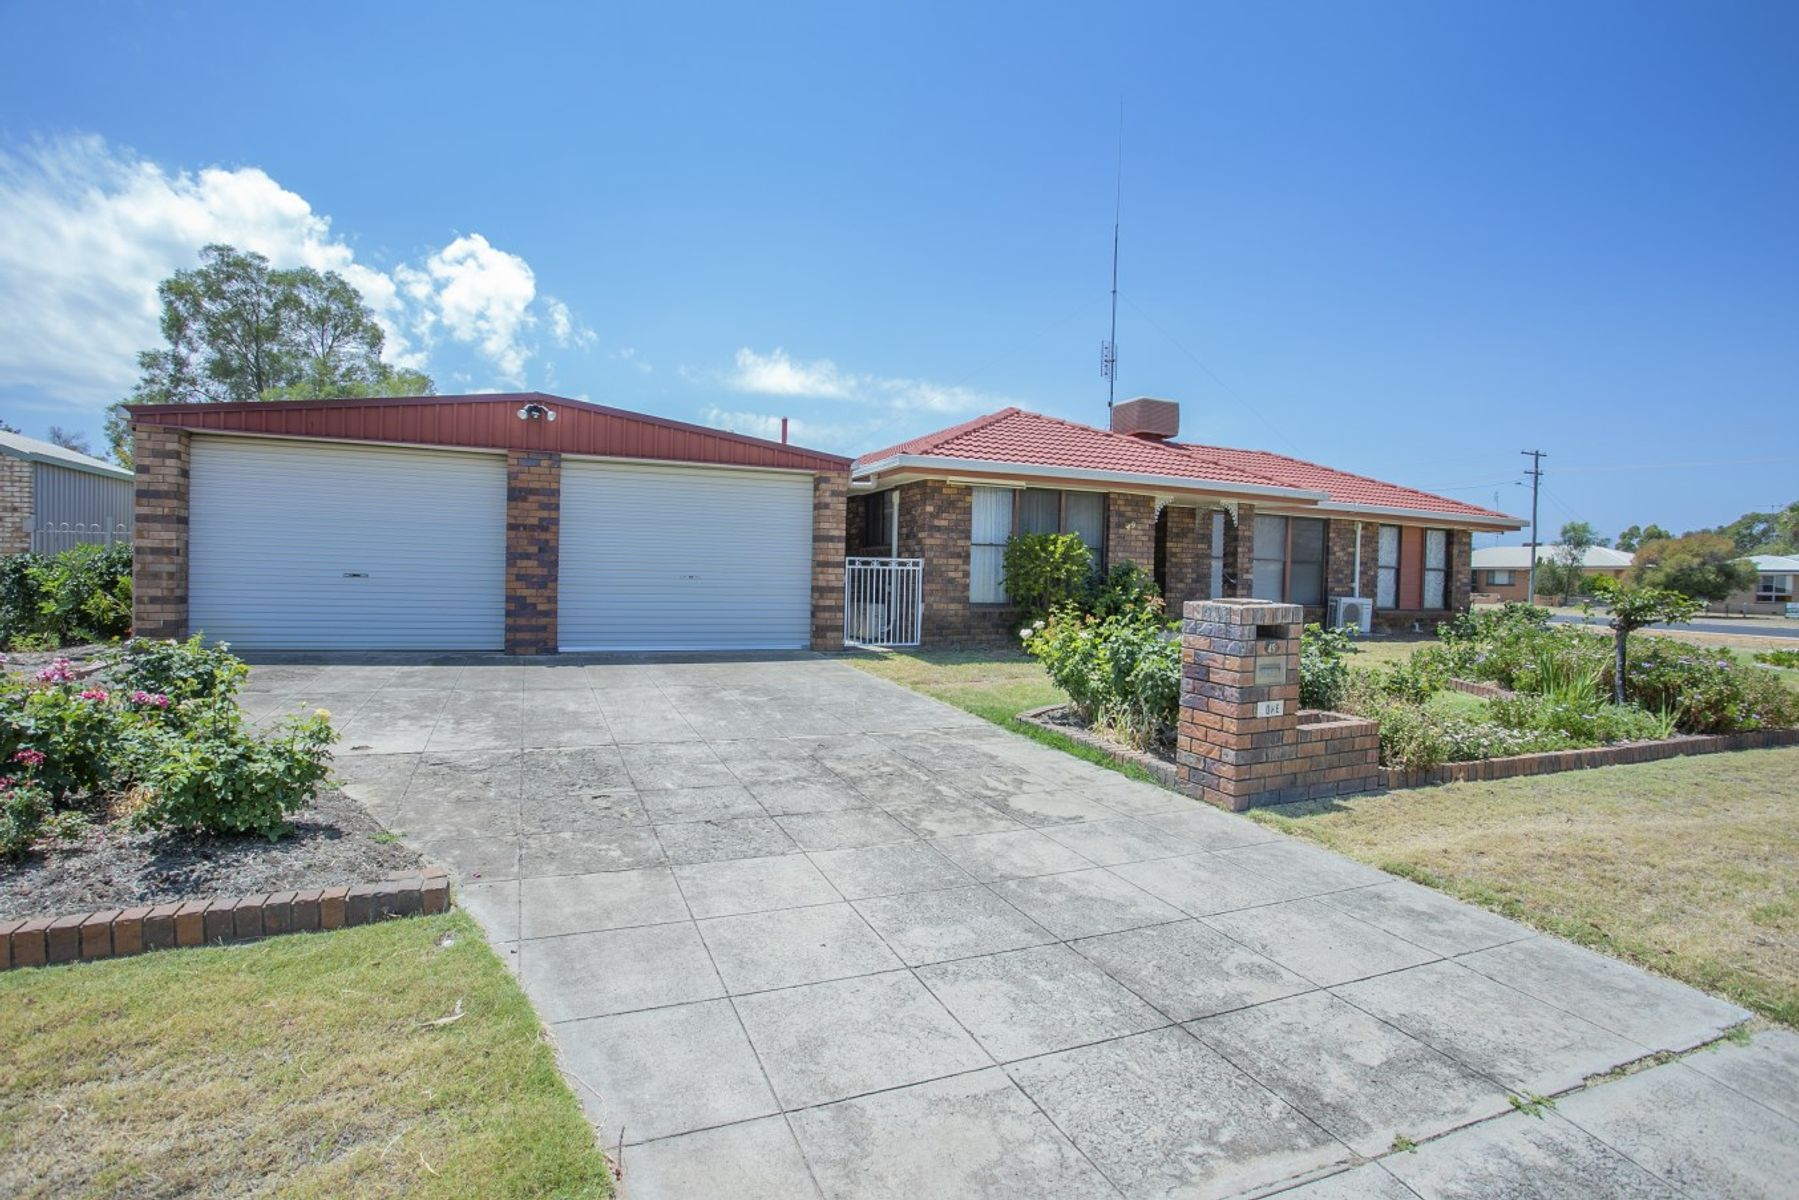 49 Mackie Street, Chinchilla, QLD 4413